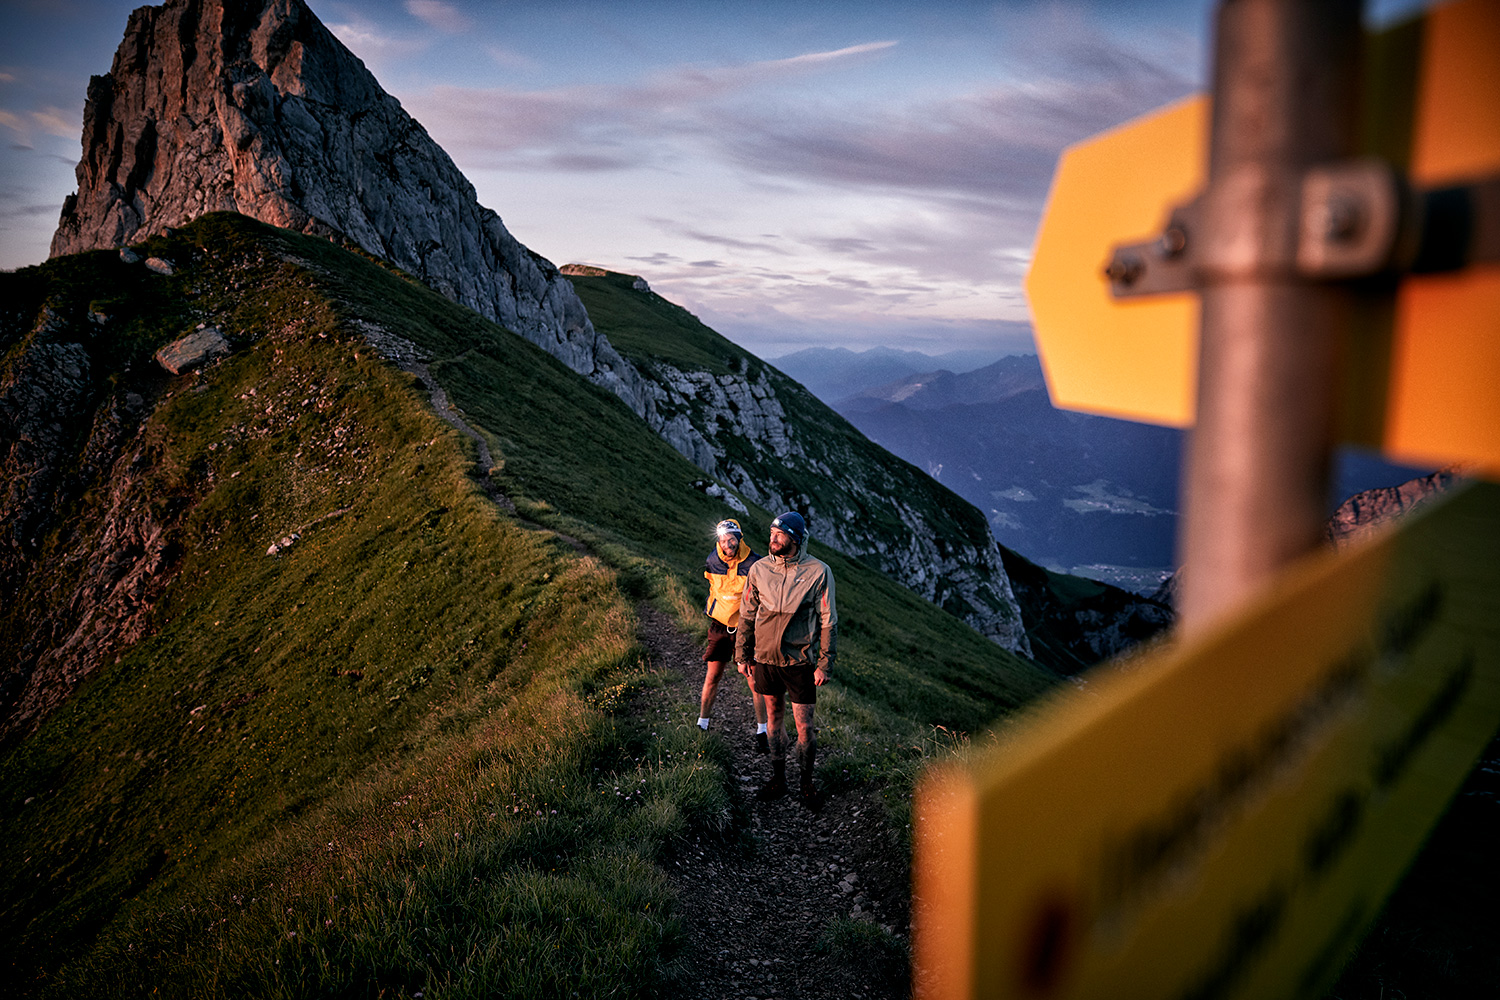 Two men trailrunning ontop of the Rofansspitze in the sunrise with a signpost in the foreground